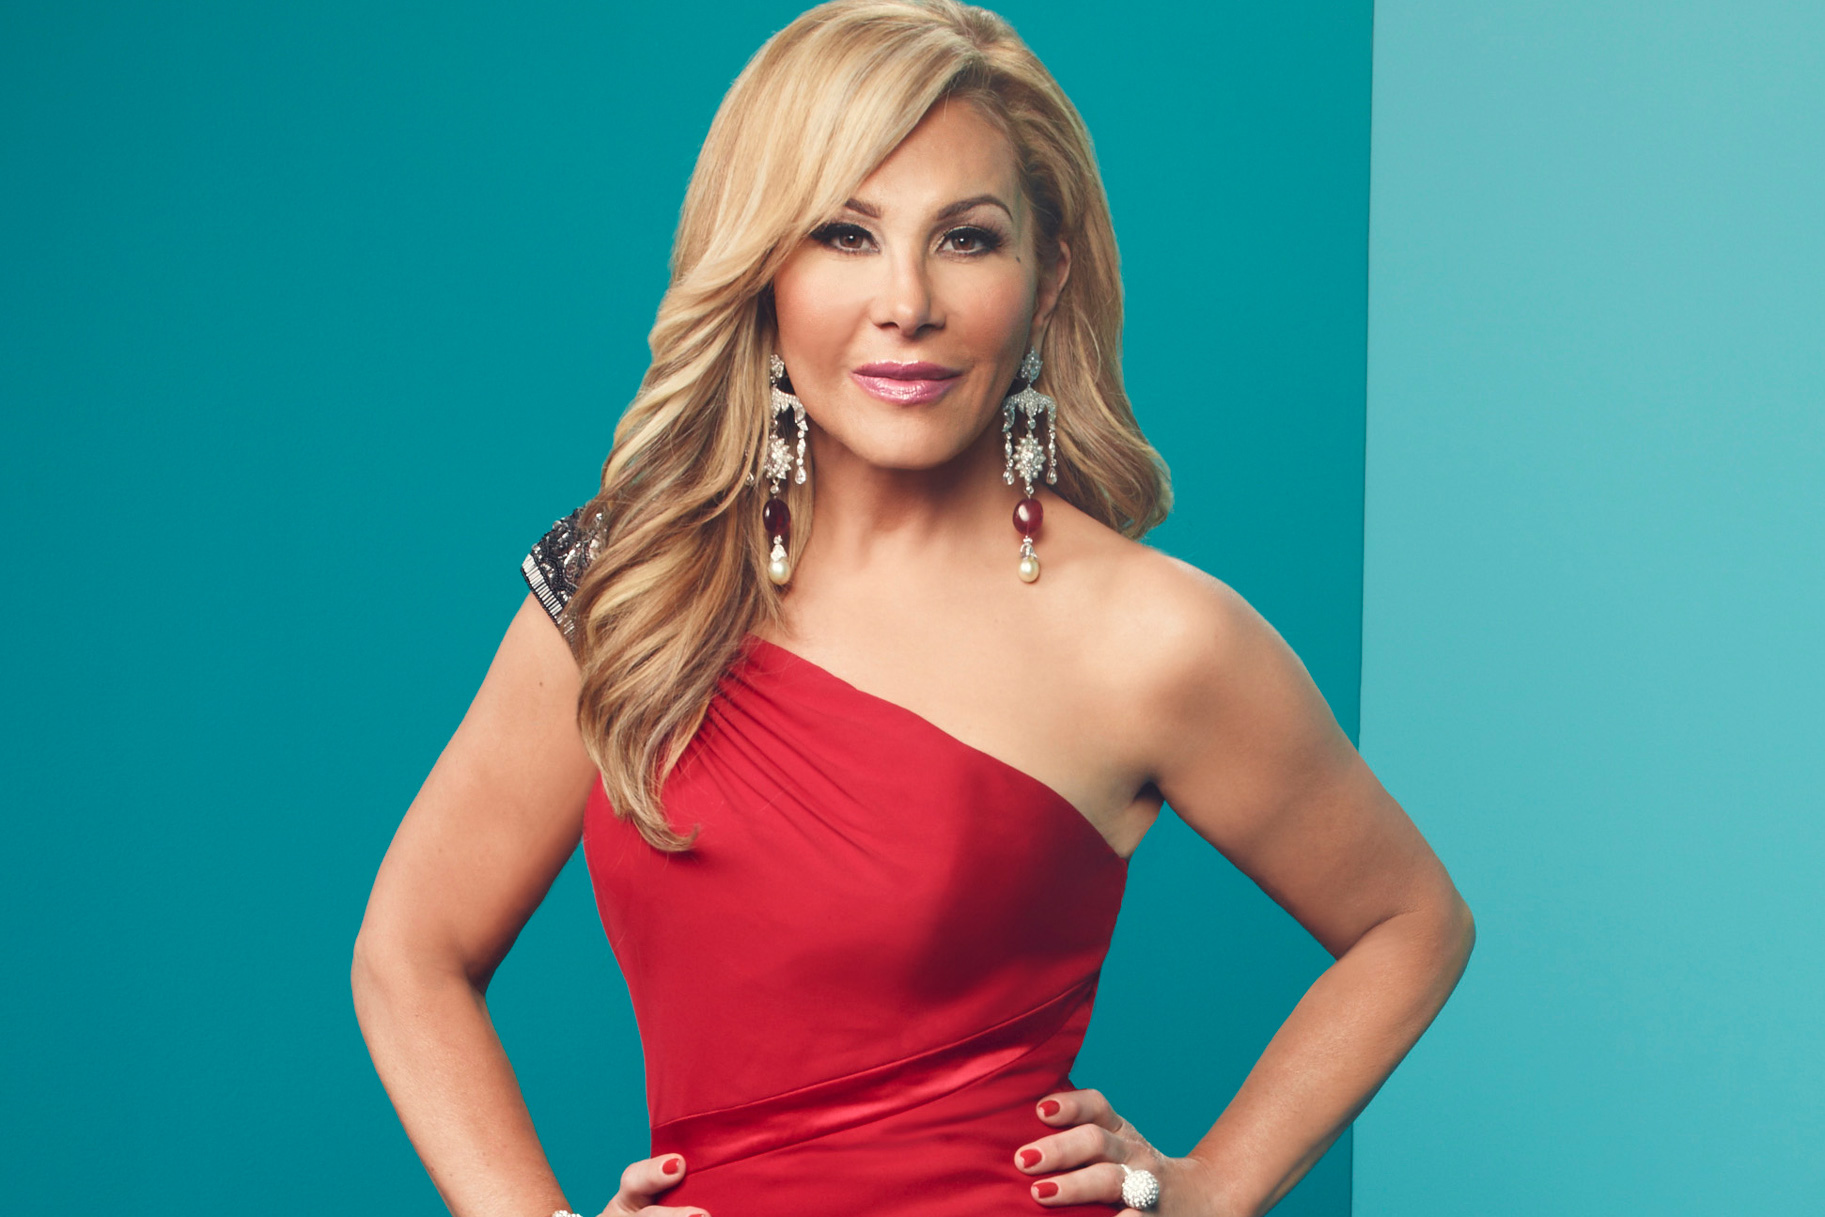 Adrienne Maloof Life After Bravo